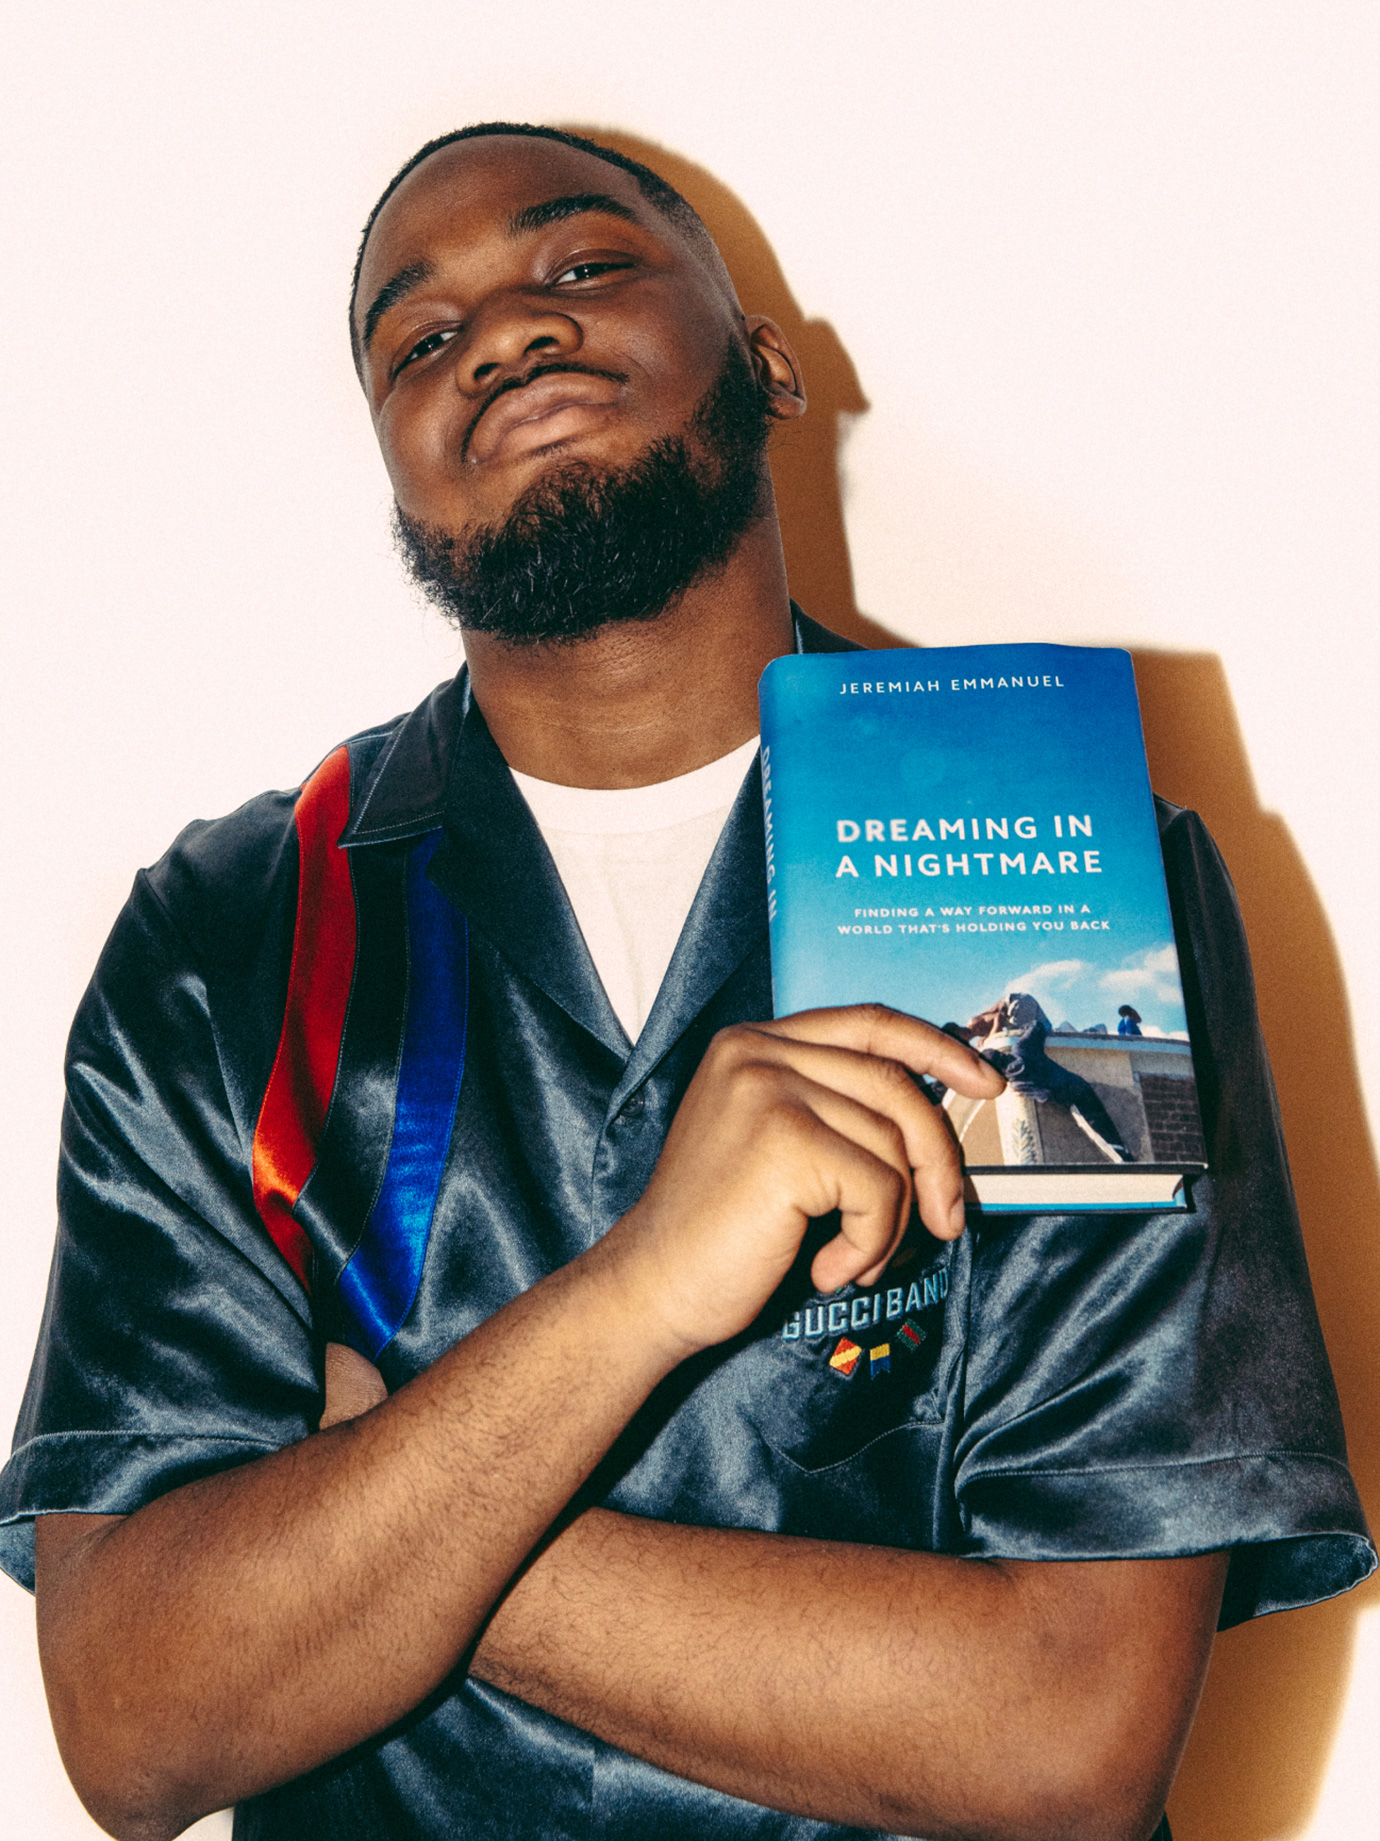 A man holding a book up to his chest.